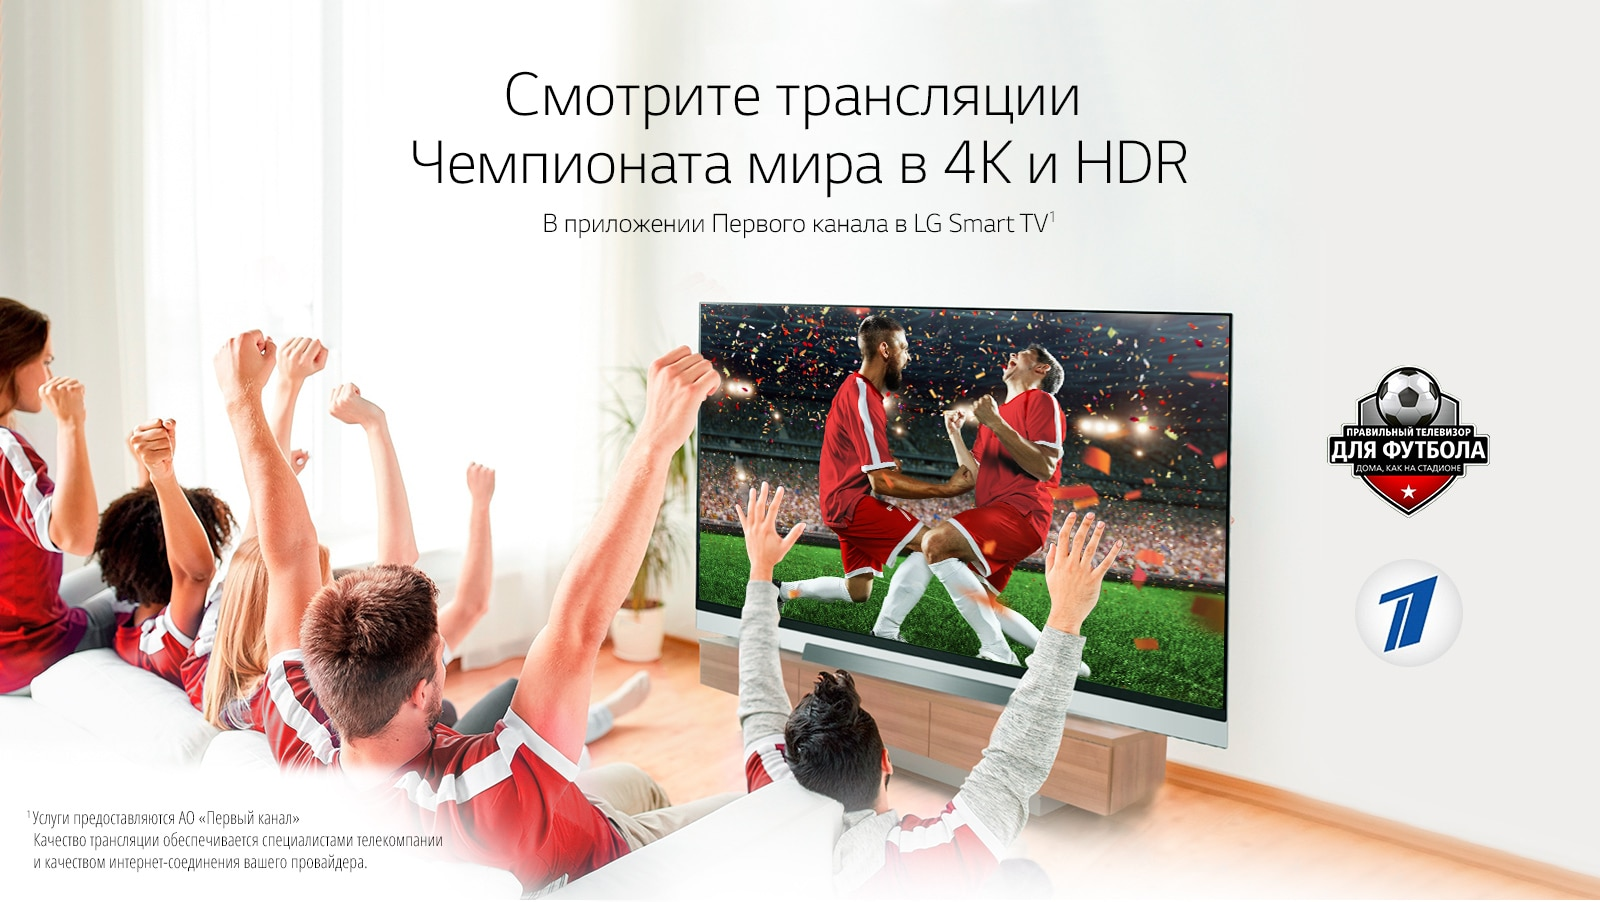 Телевизор LG 43UK6470 4K Ultra HD, IPS панель, Активный HDR, Ultra Surround, webOS Smart TV, TrueMotion, DVB-T2/C/S2 - фото СмоÑÑиÑе ÑÑанÑлÑÑии ЧемпионаÑа миÑа в 4Ри HDR